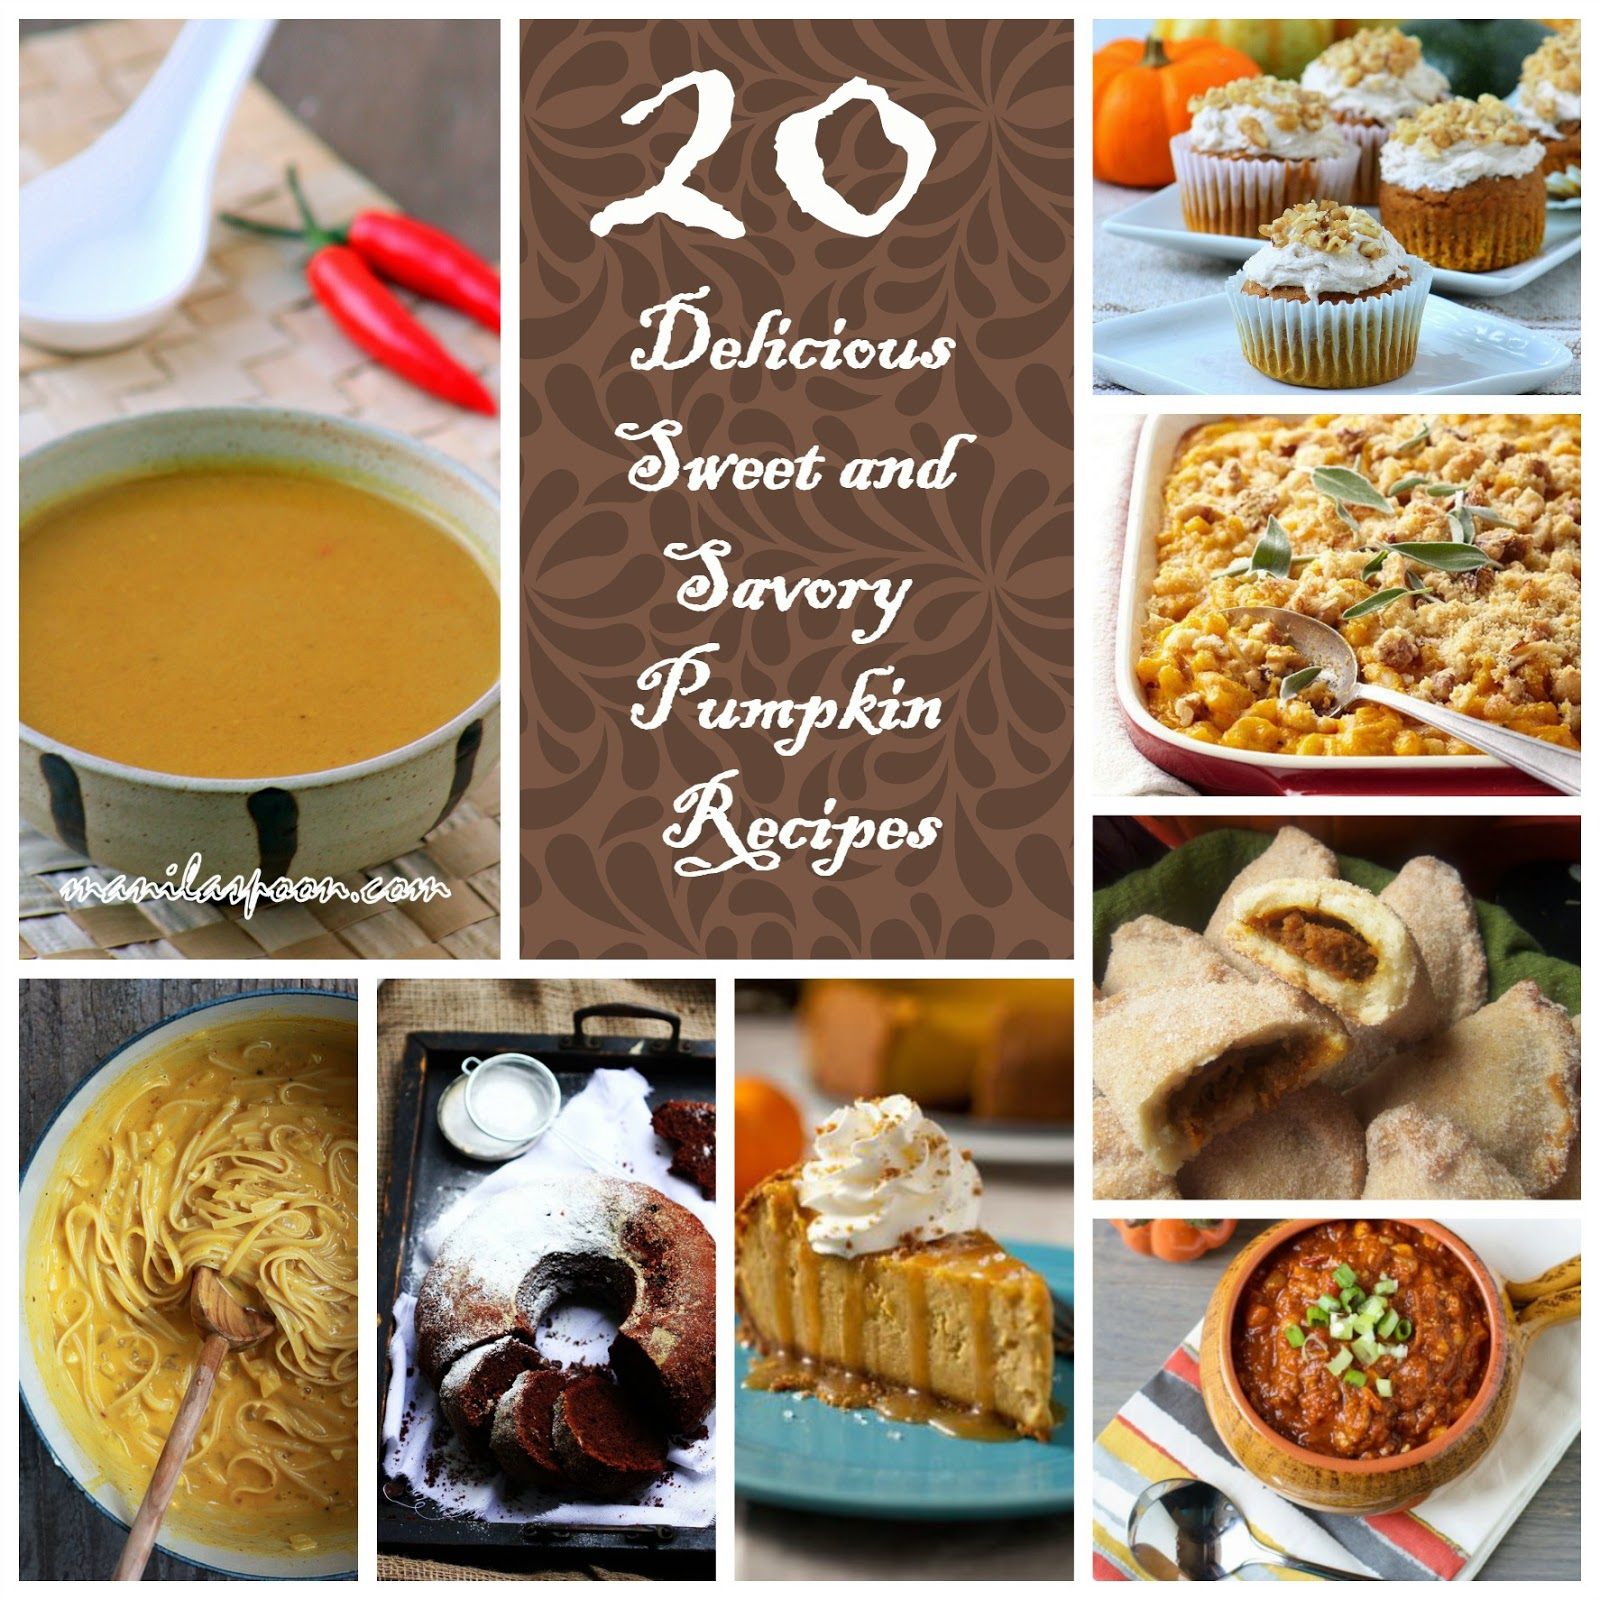 20 Delicious Sweet and Savory Pumpkin Recipes